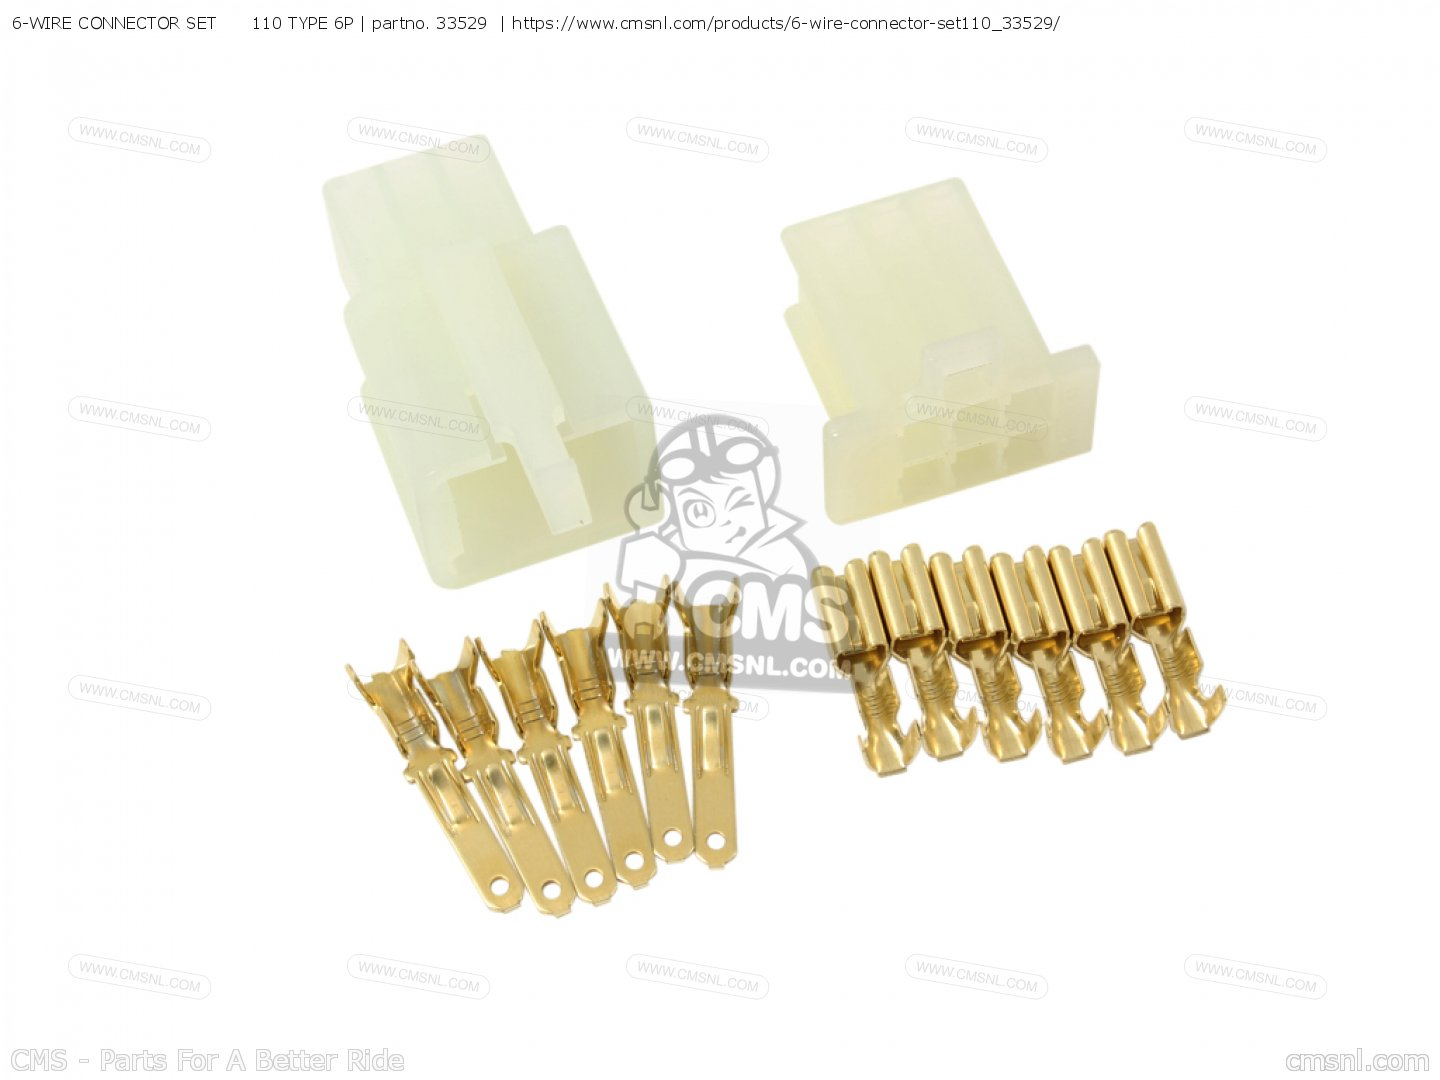 6-WIRE CONNECTOR SET 110 TYPE 6P, fits Electrical maintenance parts ...